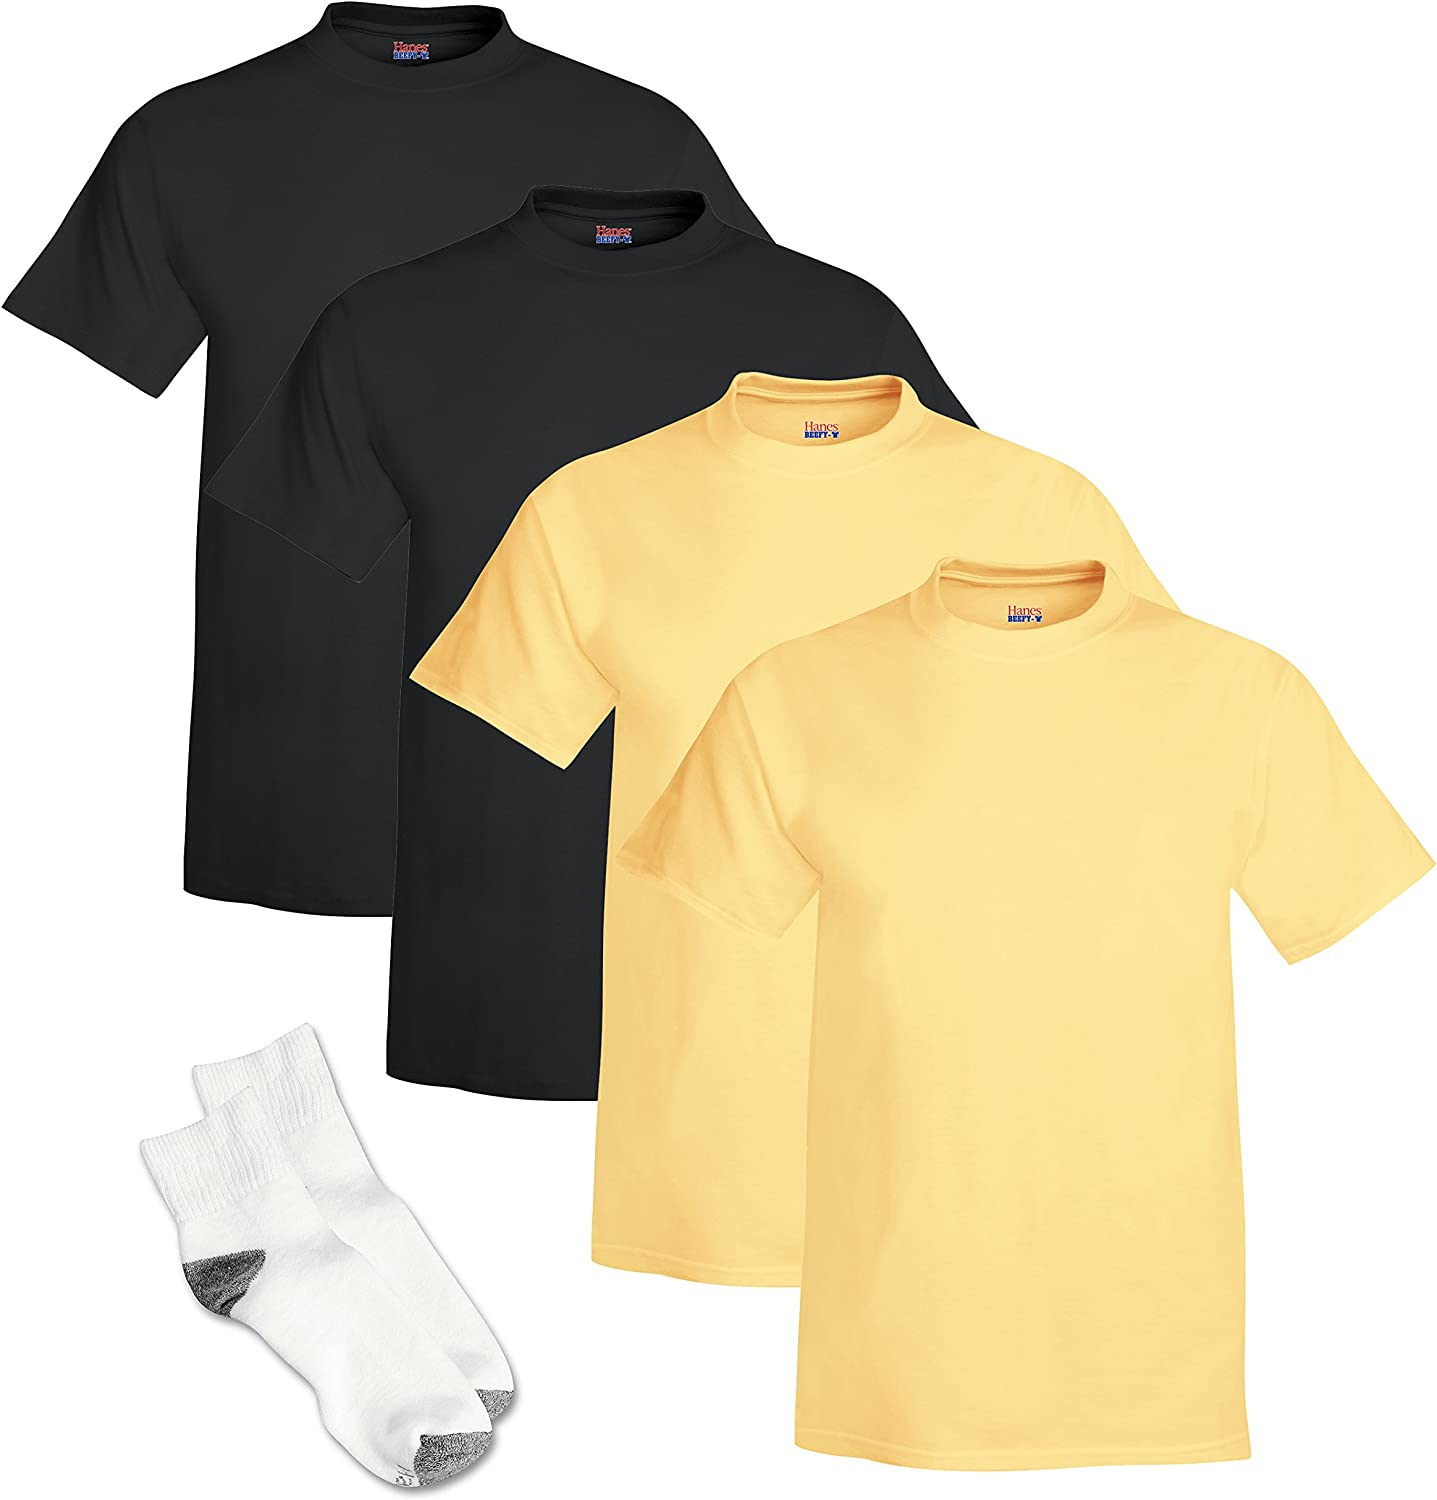 Hanes Men's Beefy-T Short Sleeve T-Shirt (Pack of 4) 2 Black / 2 Daffodil Yellow